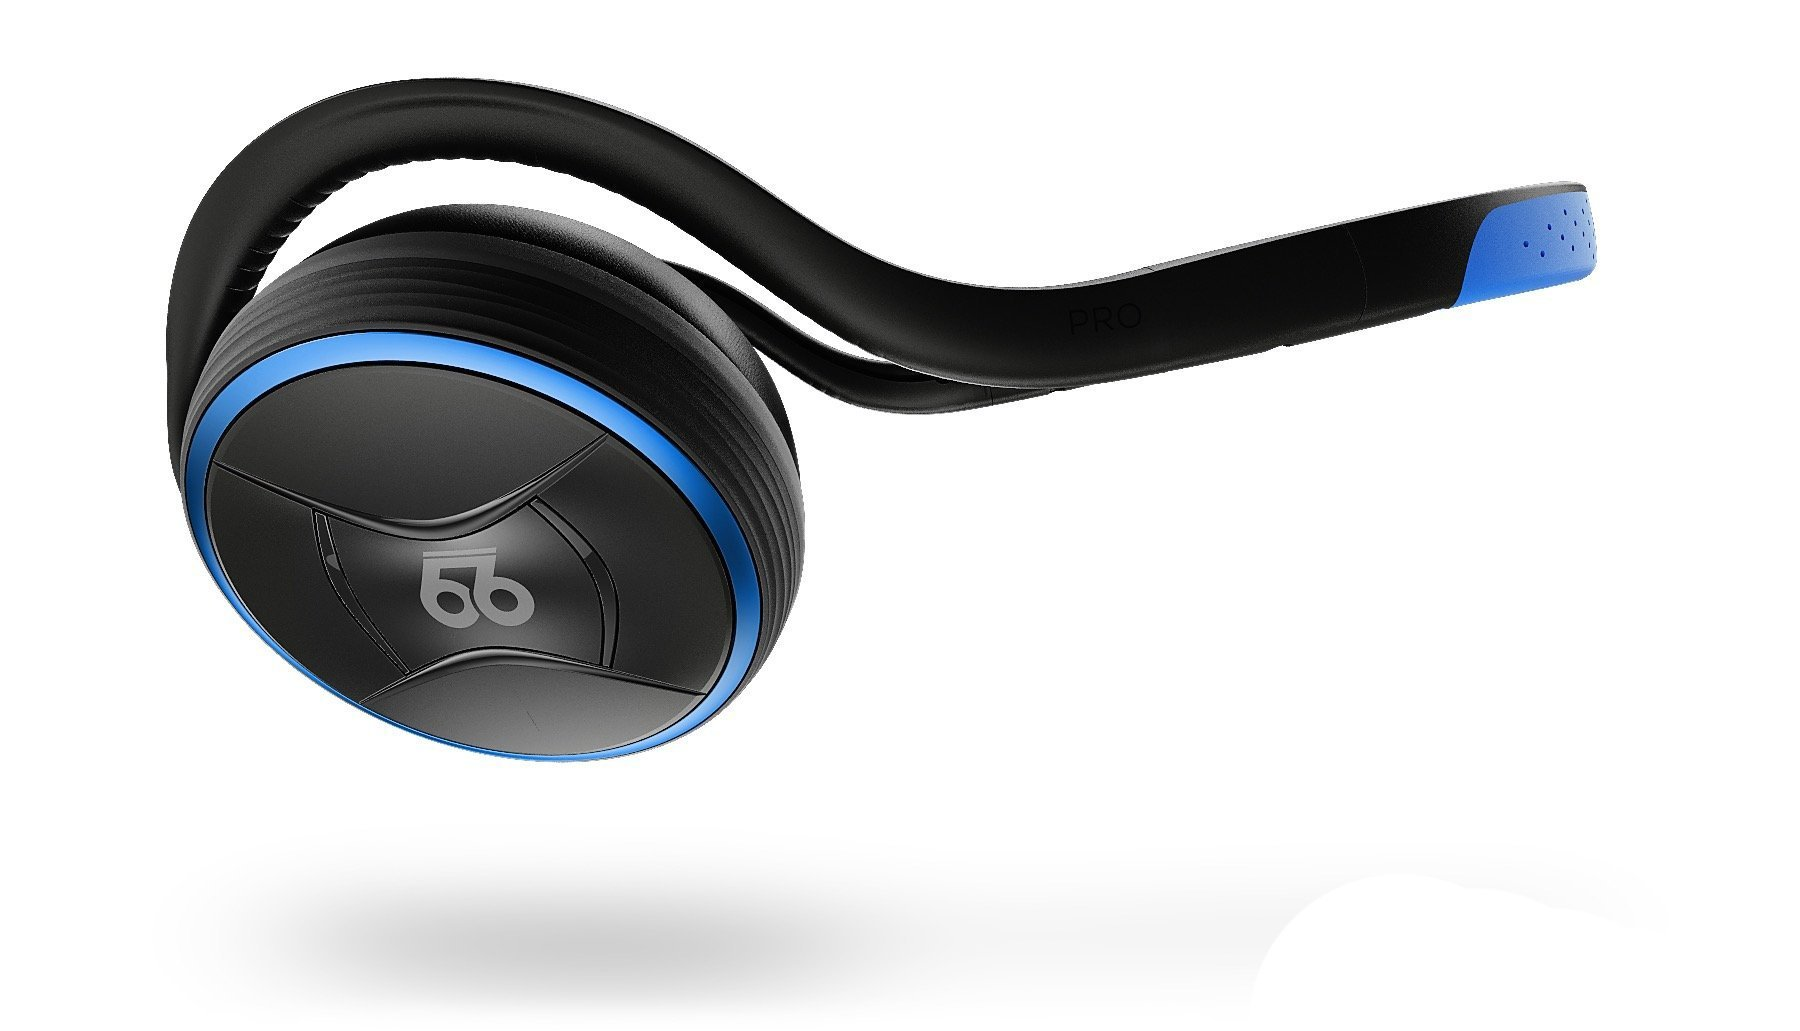 66 AUDIO - PRO Voice - Bluetooth Wireless Headphones with Amazon Alexa Voice Recognition Technology by 66 Audio